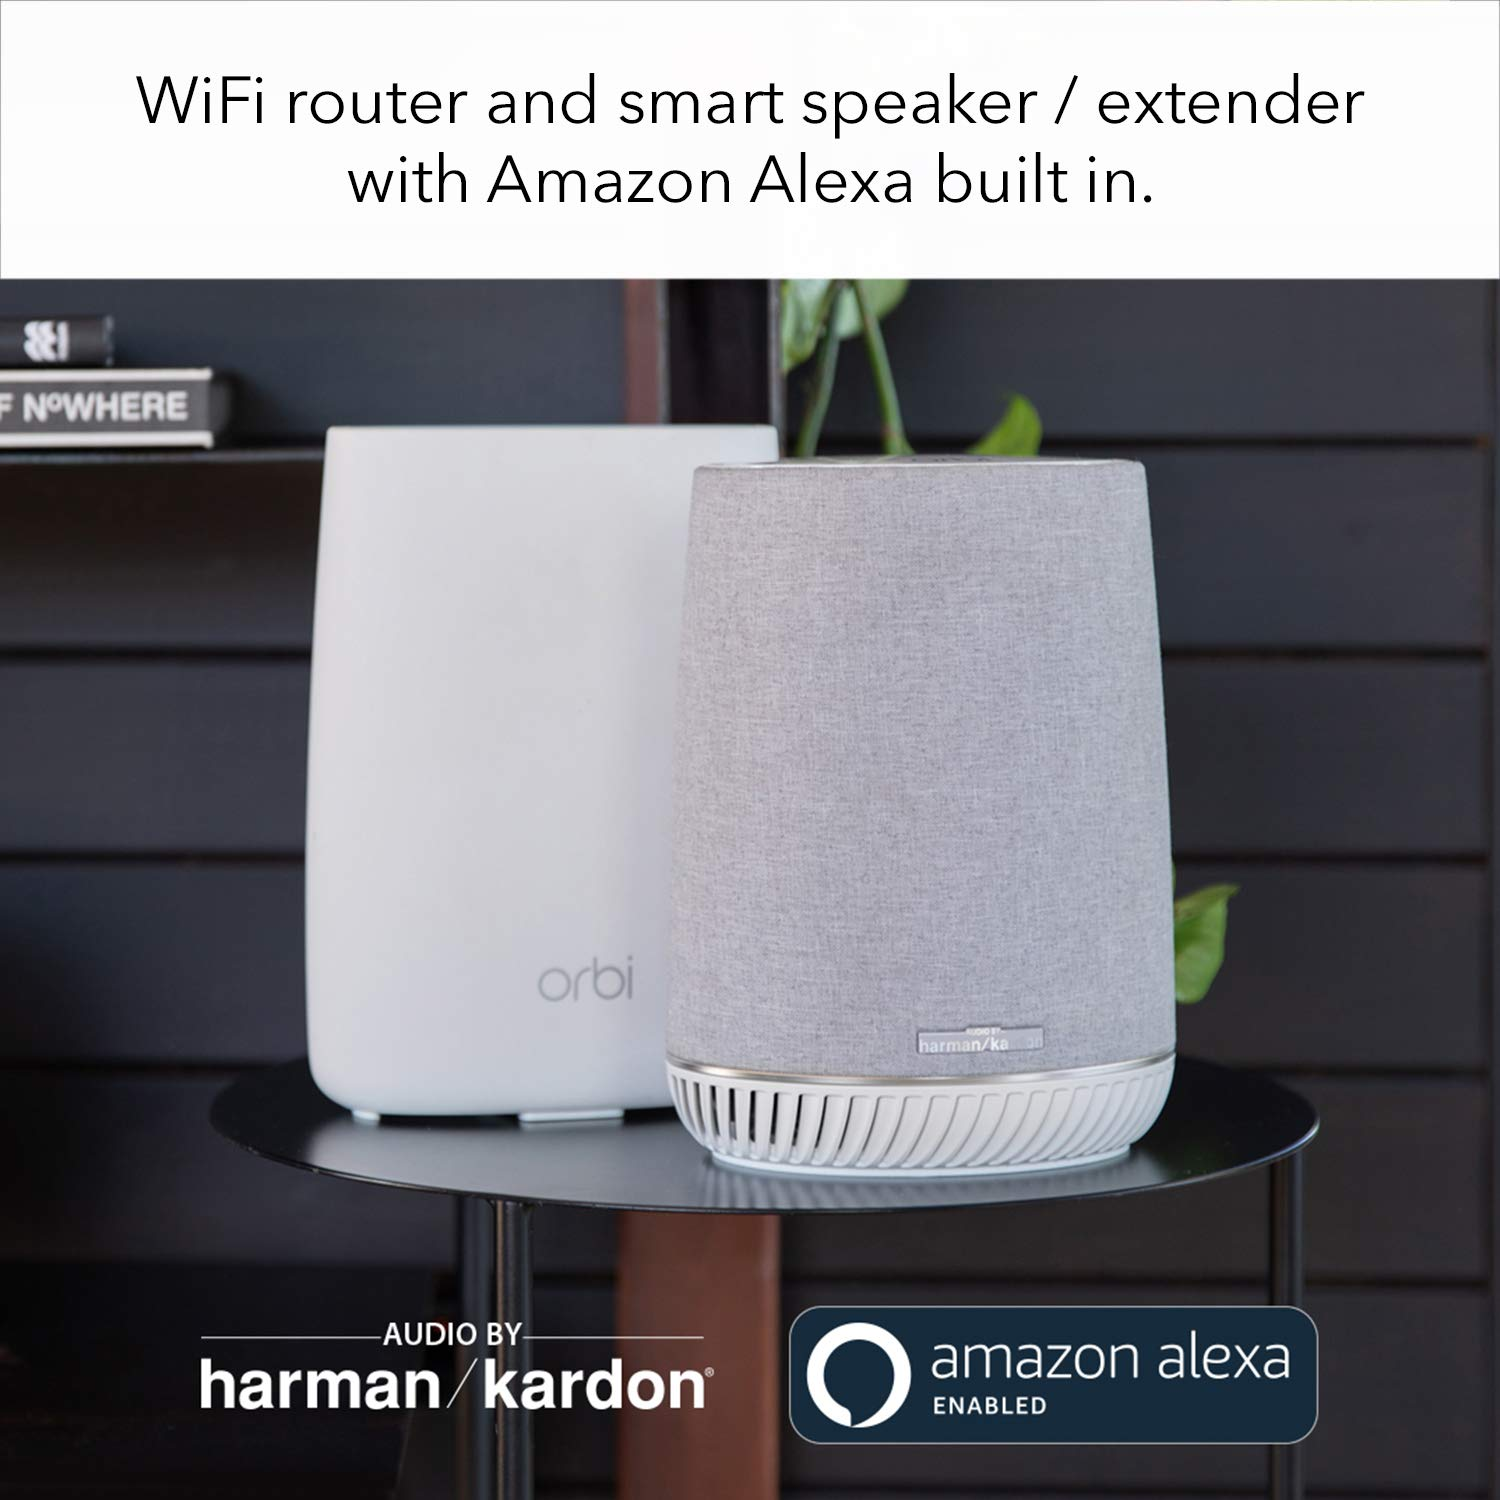 WiFi Router and 2 Wall-Plug Satellite Extenders with speeds up to 2.2 Gbps Over 5,000 sq RBK33 feet NETGEAR Orbi Wall-Plug Whole Home Mesh WiFi System AC2200